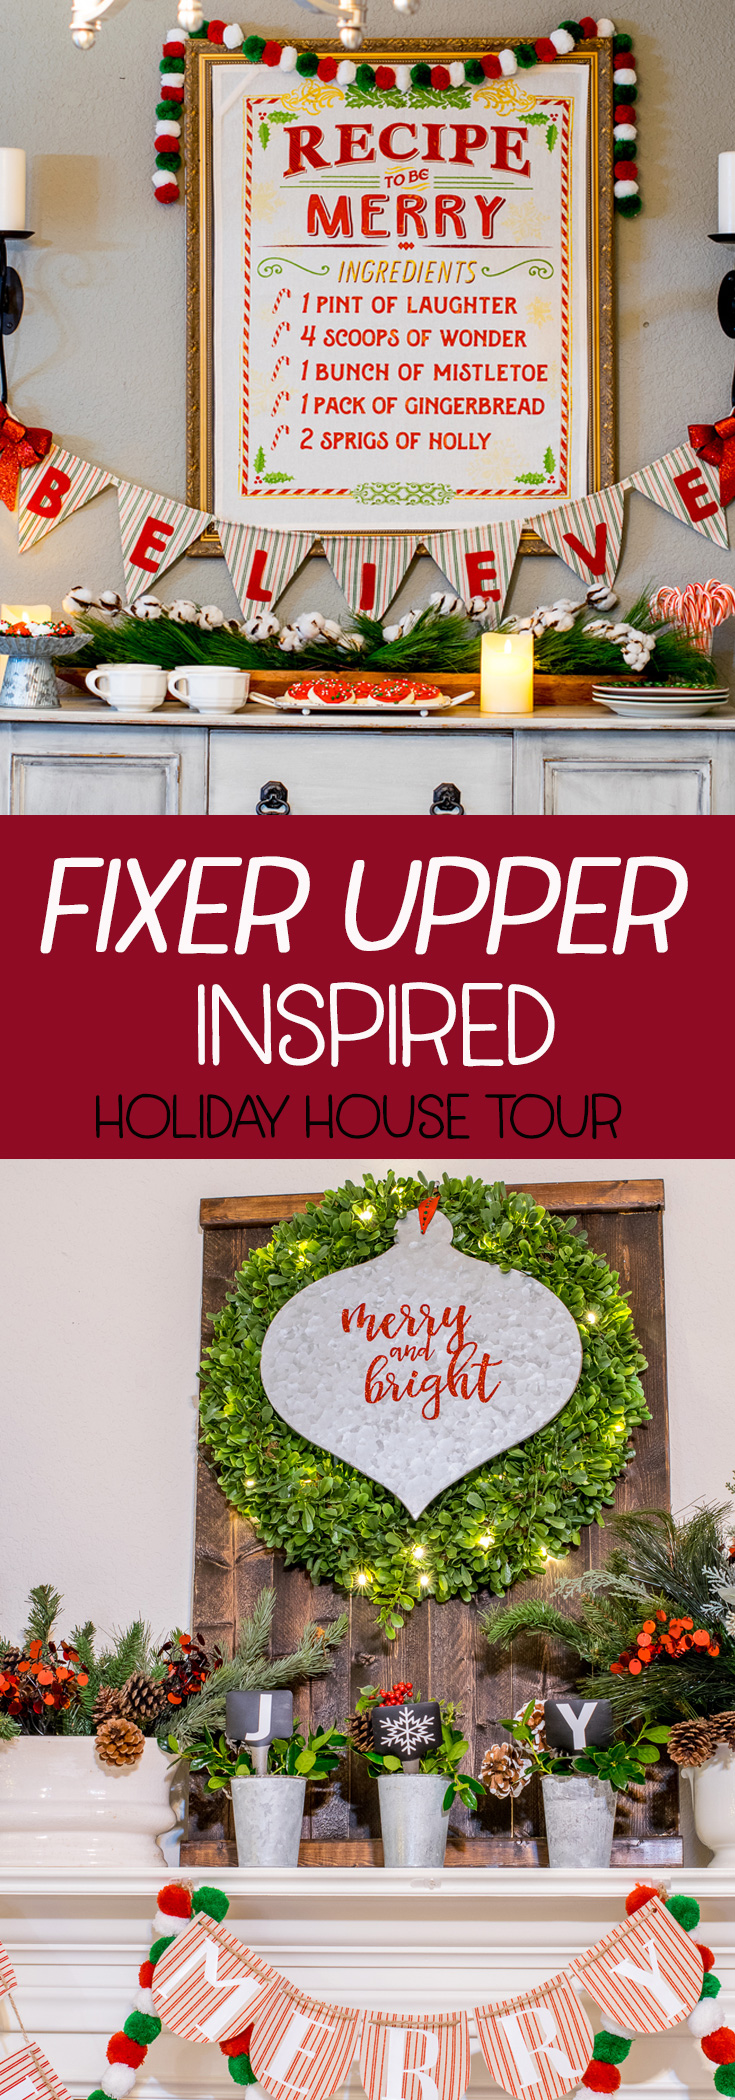 Welcome to my Holiday House tour! This years tour is FIXER UPPER INSPIRED! See all the little details, some of which I picked up in Waco and Round Top! #holidayhousetour #hometour #Christmastour #fixerupper #holidaycrafts